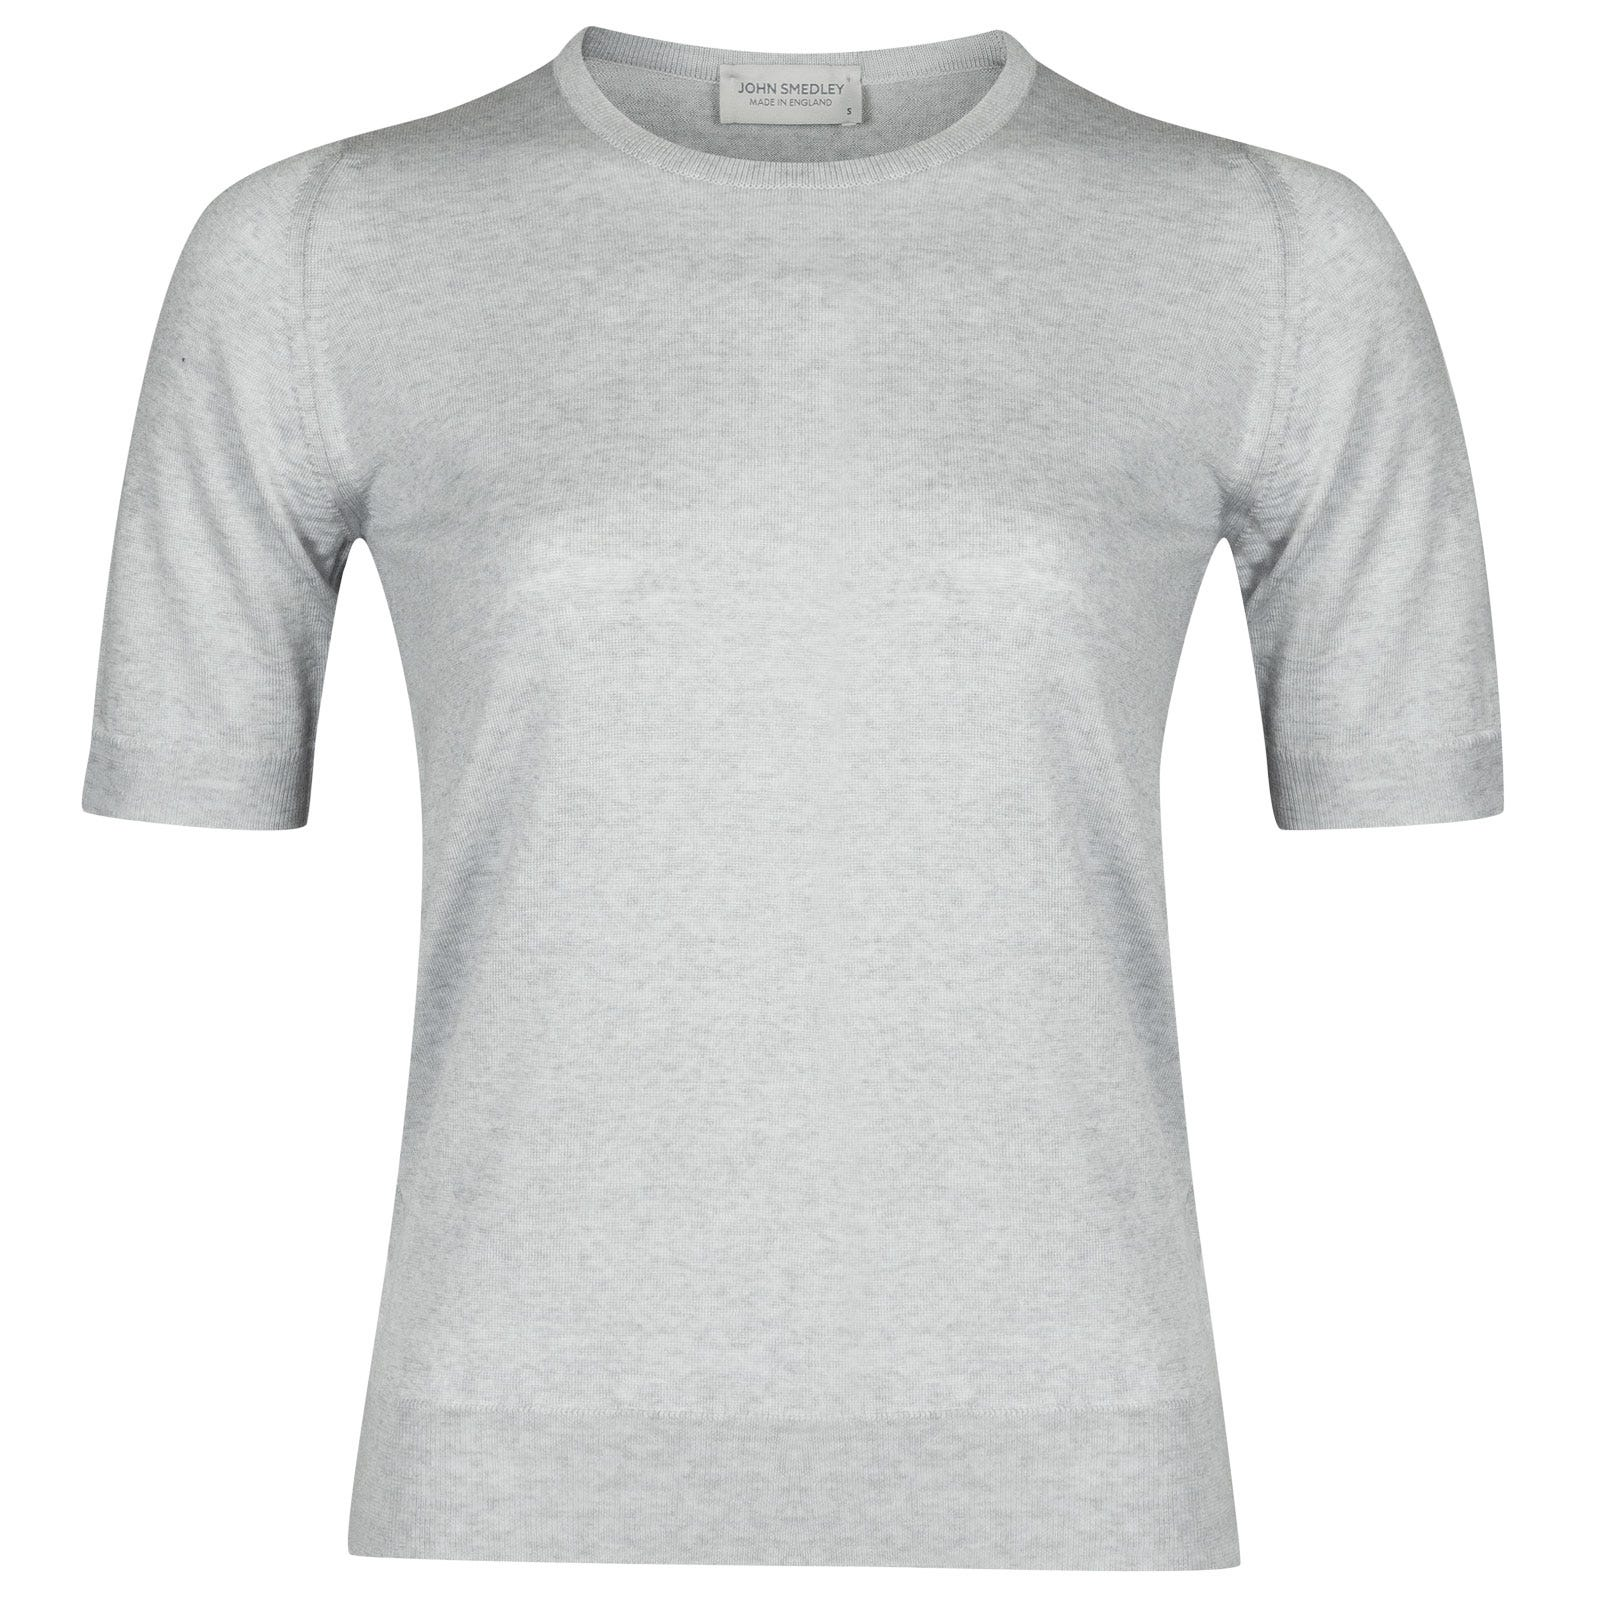 John Smedley trieste Merino Wool Sweater in Bardot Grey-M